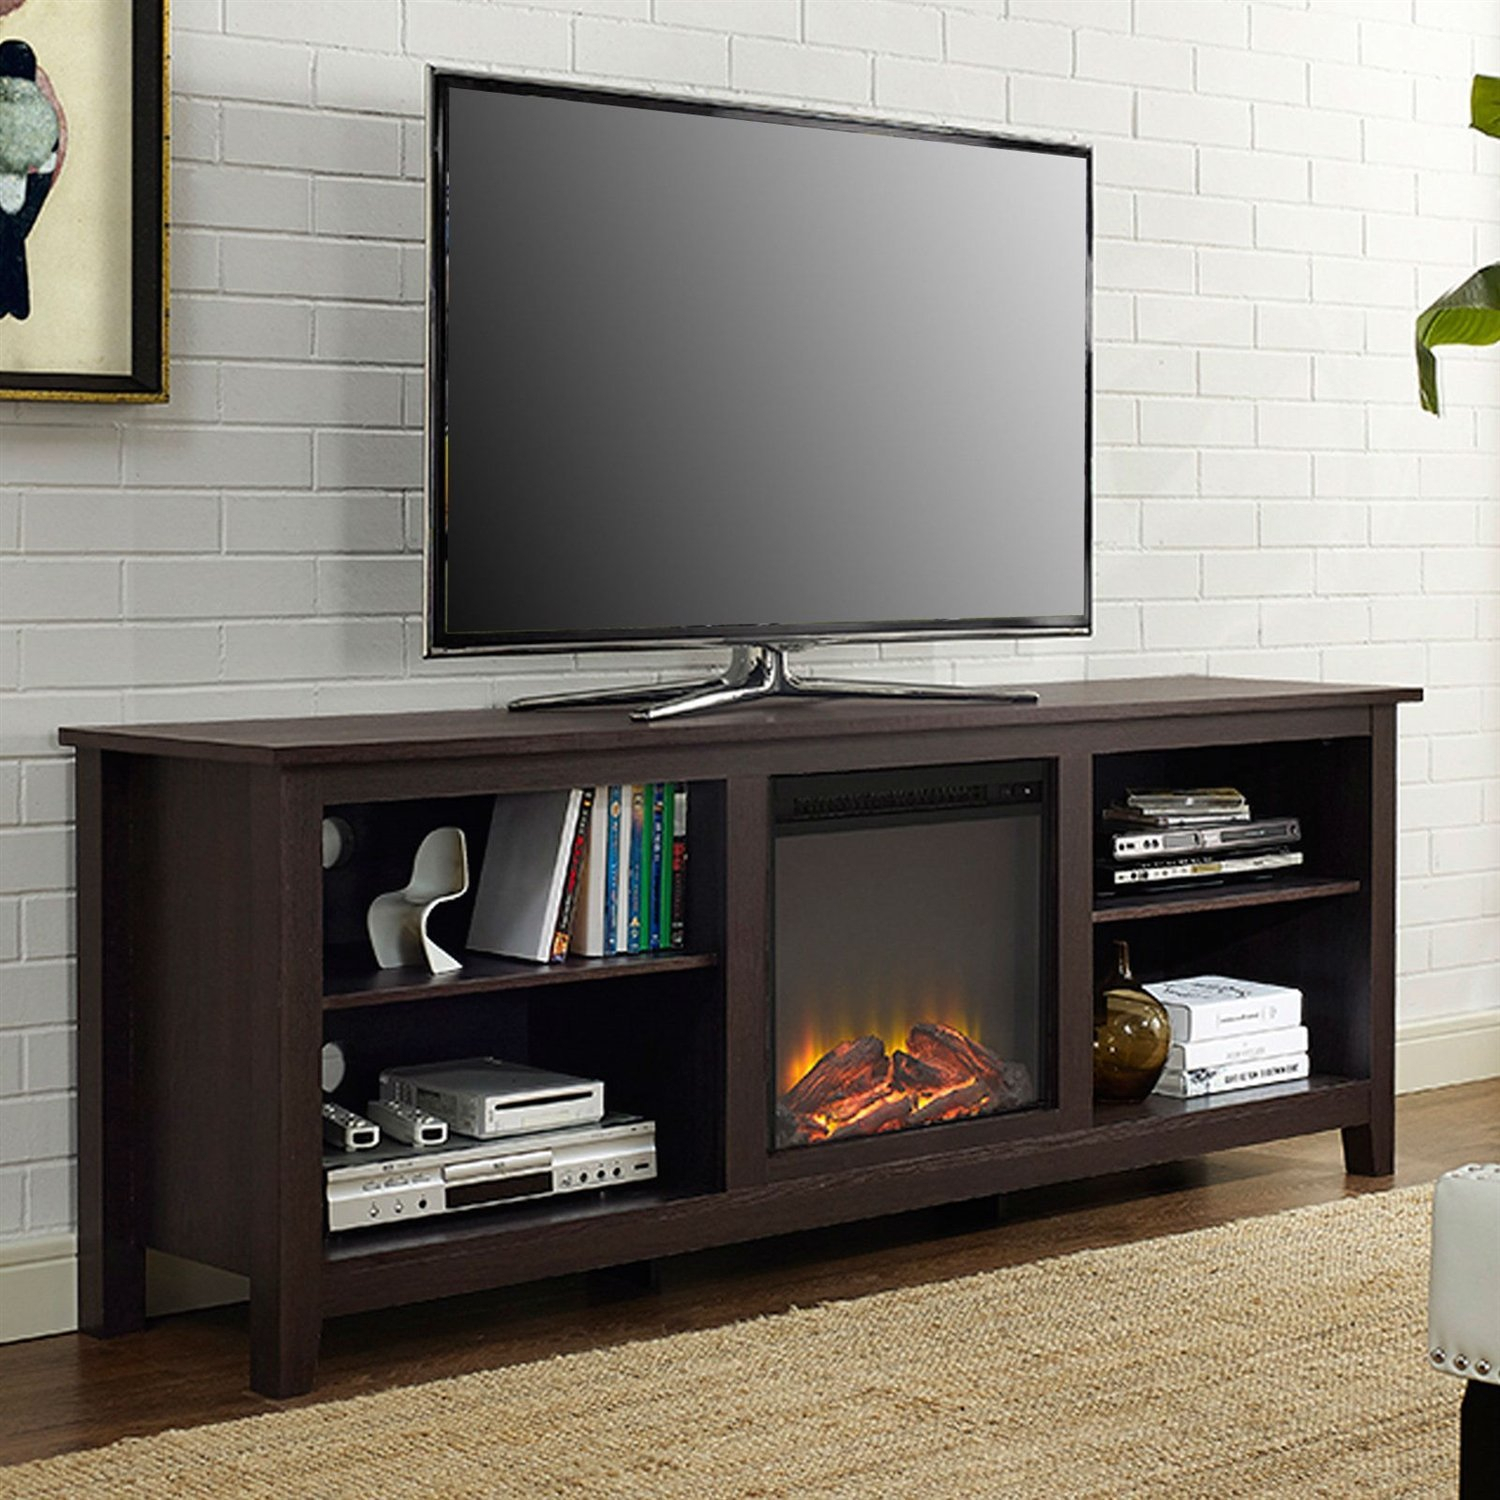 Espresso 70-Inch Electric Fireplace Tv Stand Space Heater | Products within Annabelle Black 70 Inch Tv Stands (Image 14 of 30)